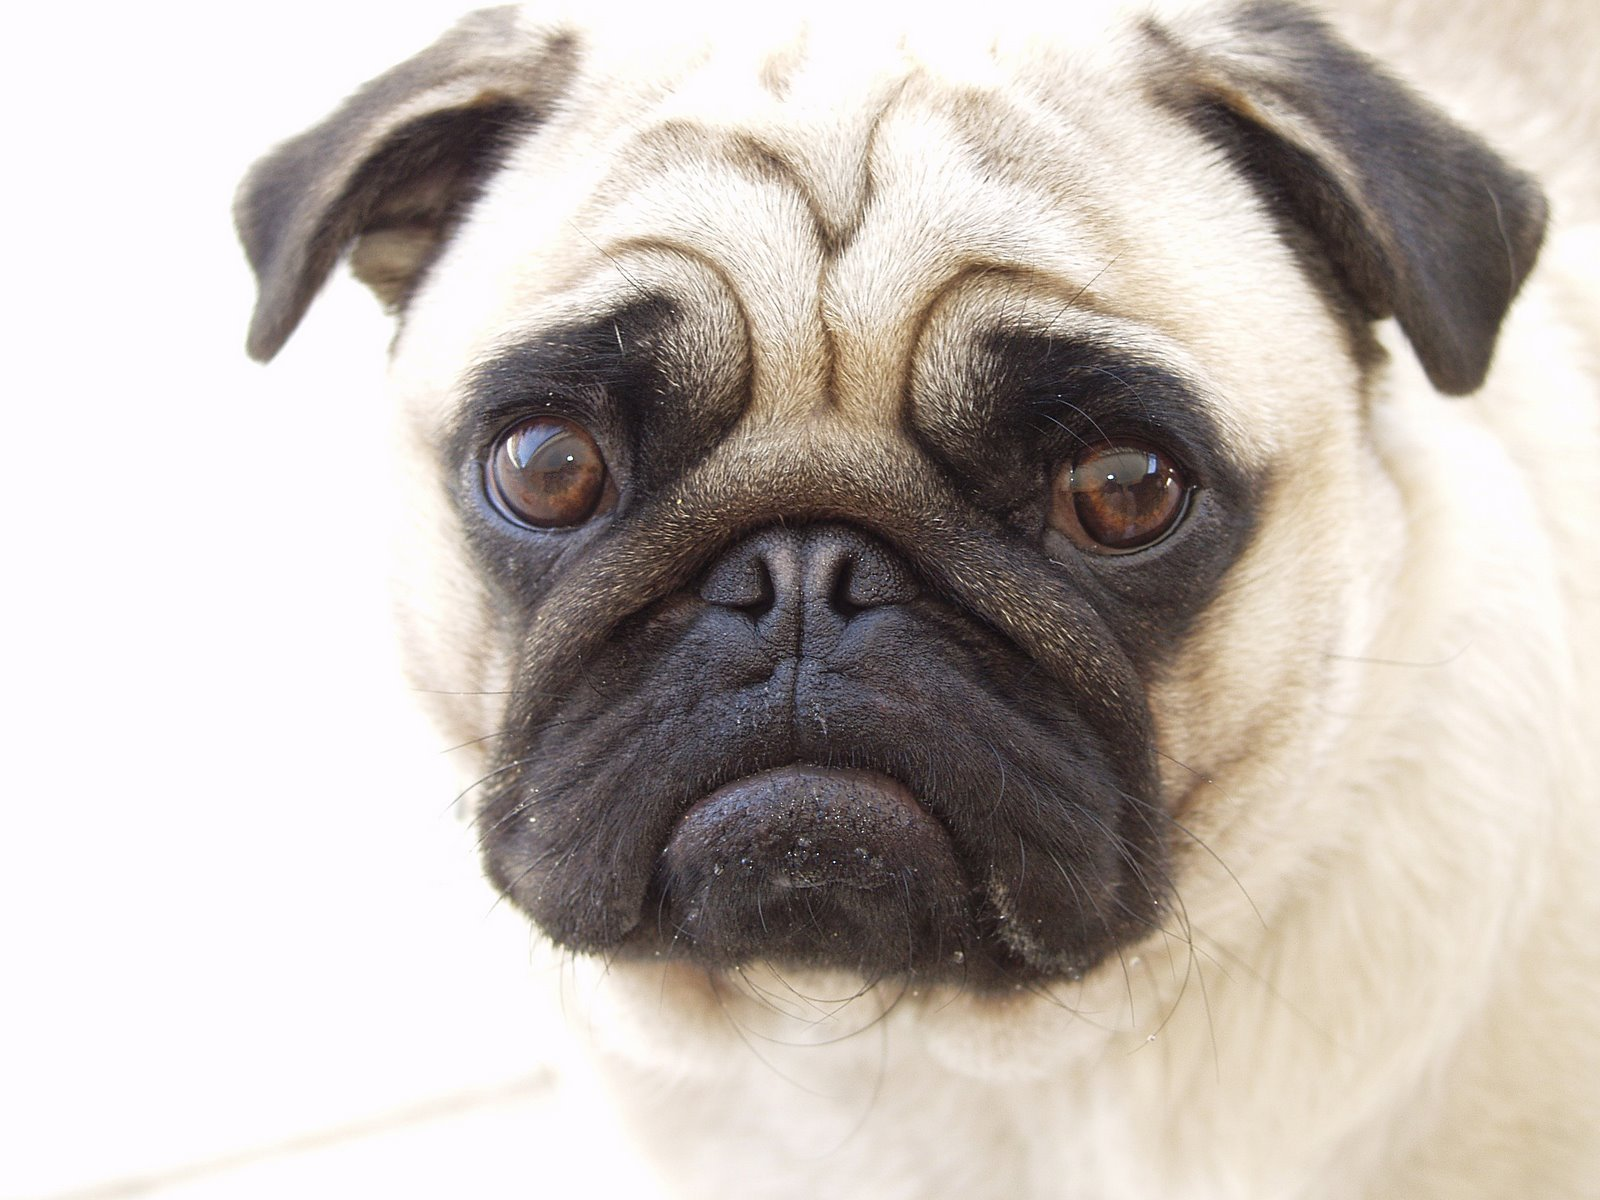 Beautiful Pug ♥ - Pugs Wallpaper (13728088) - Fanpop